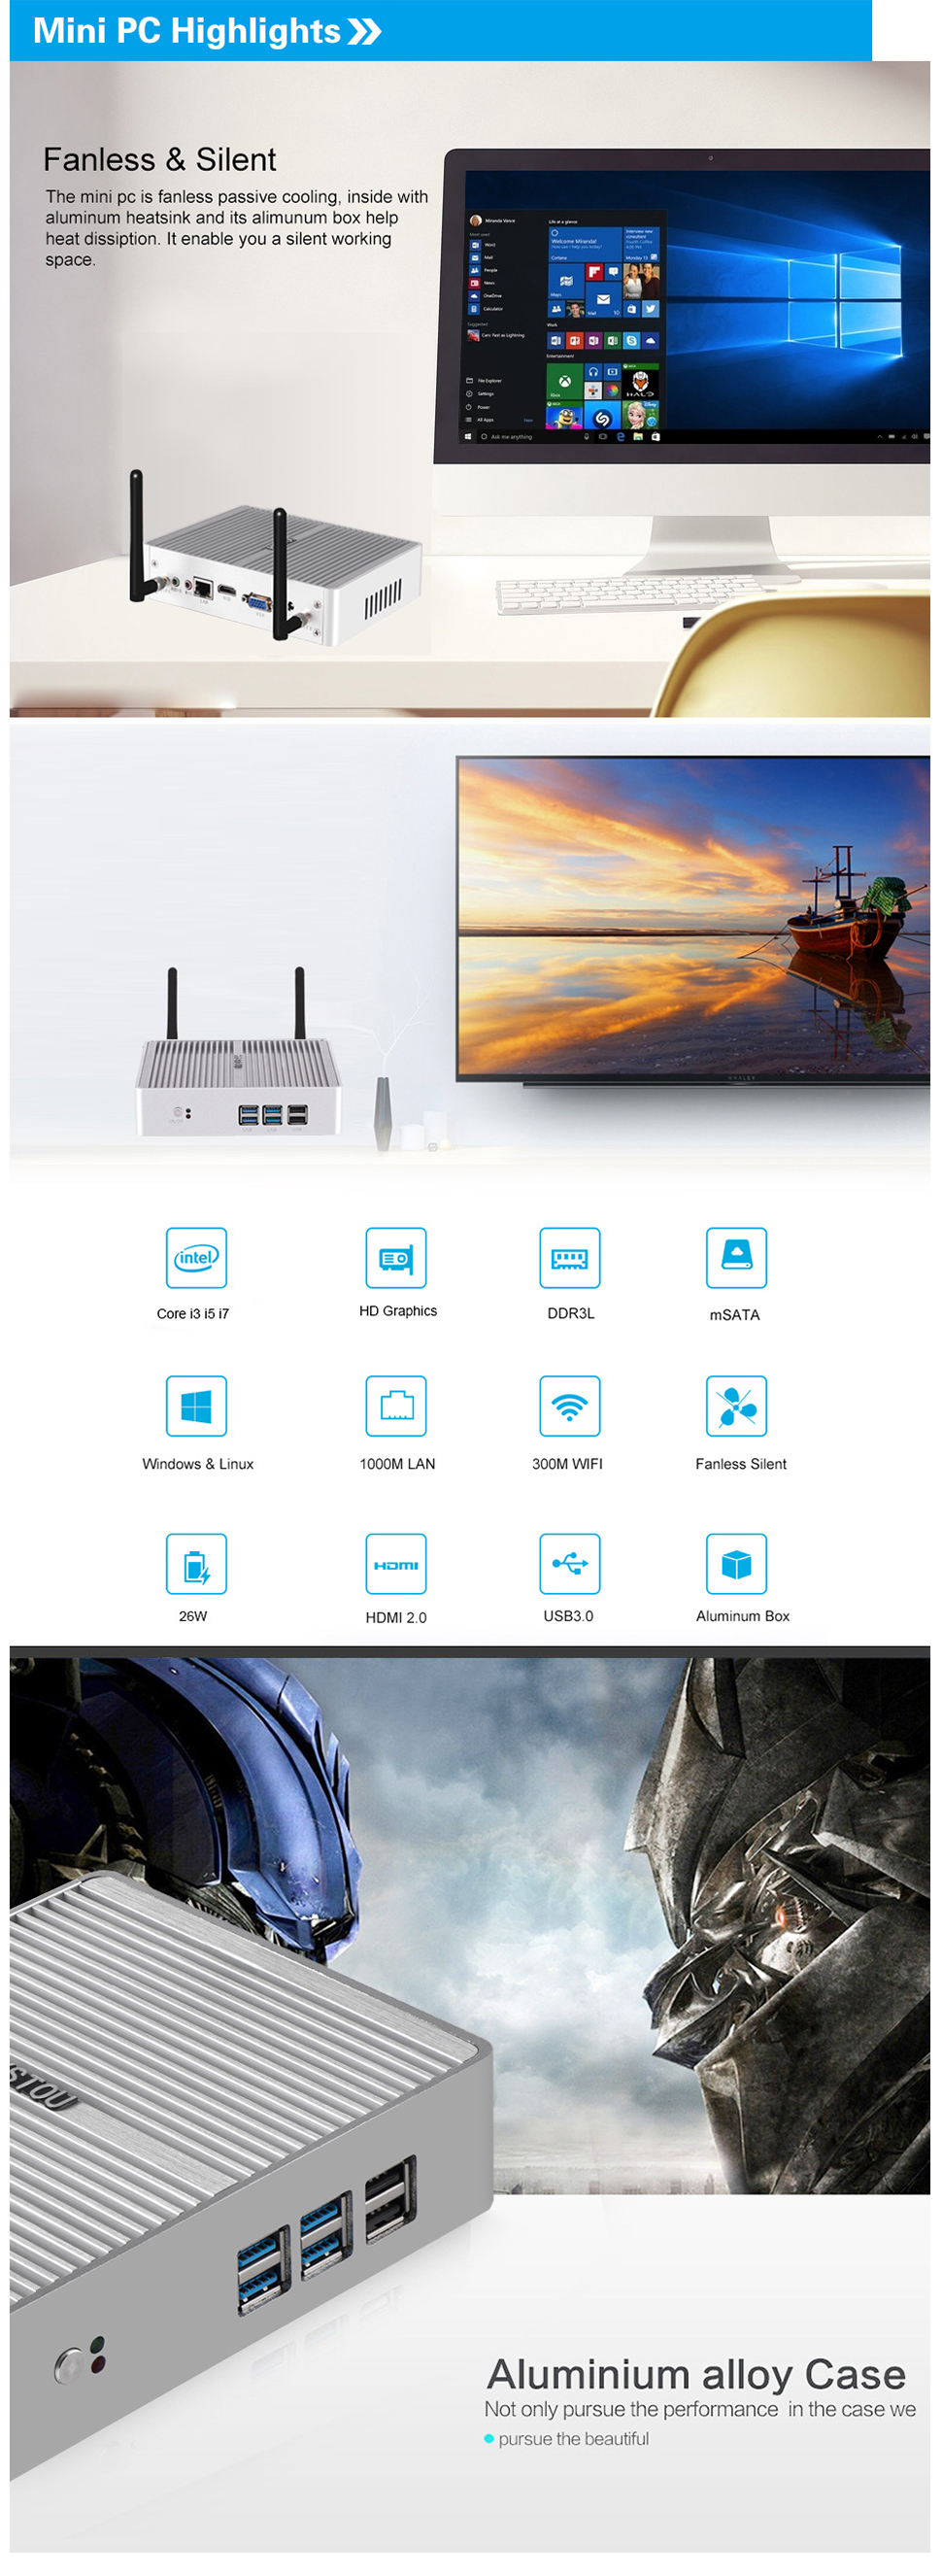 HYSTOU H2 Mini PC i5 7200U 8GB+128GB/8GB+256GB Dual cores Win10 DDR3 Intel HD Graphics 620 3.1GHz Fanless Mini Desktop PC SATA mSATA MIC VGA HDMI 300M WIFI